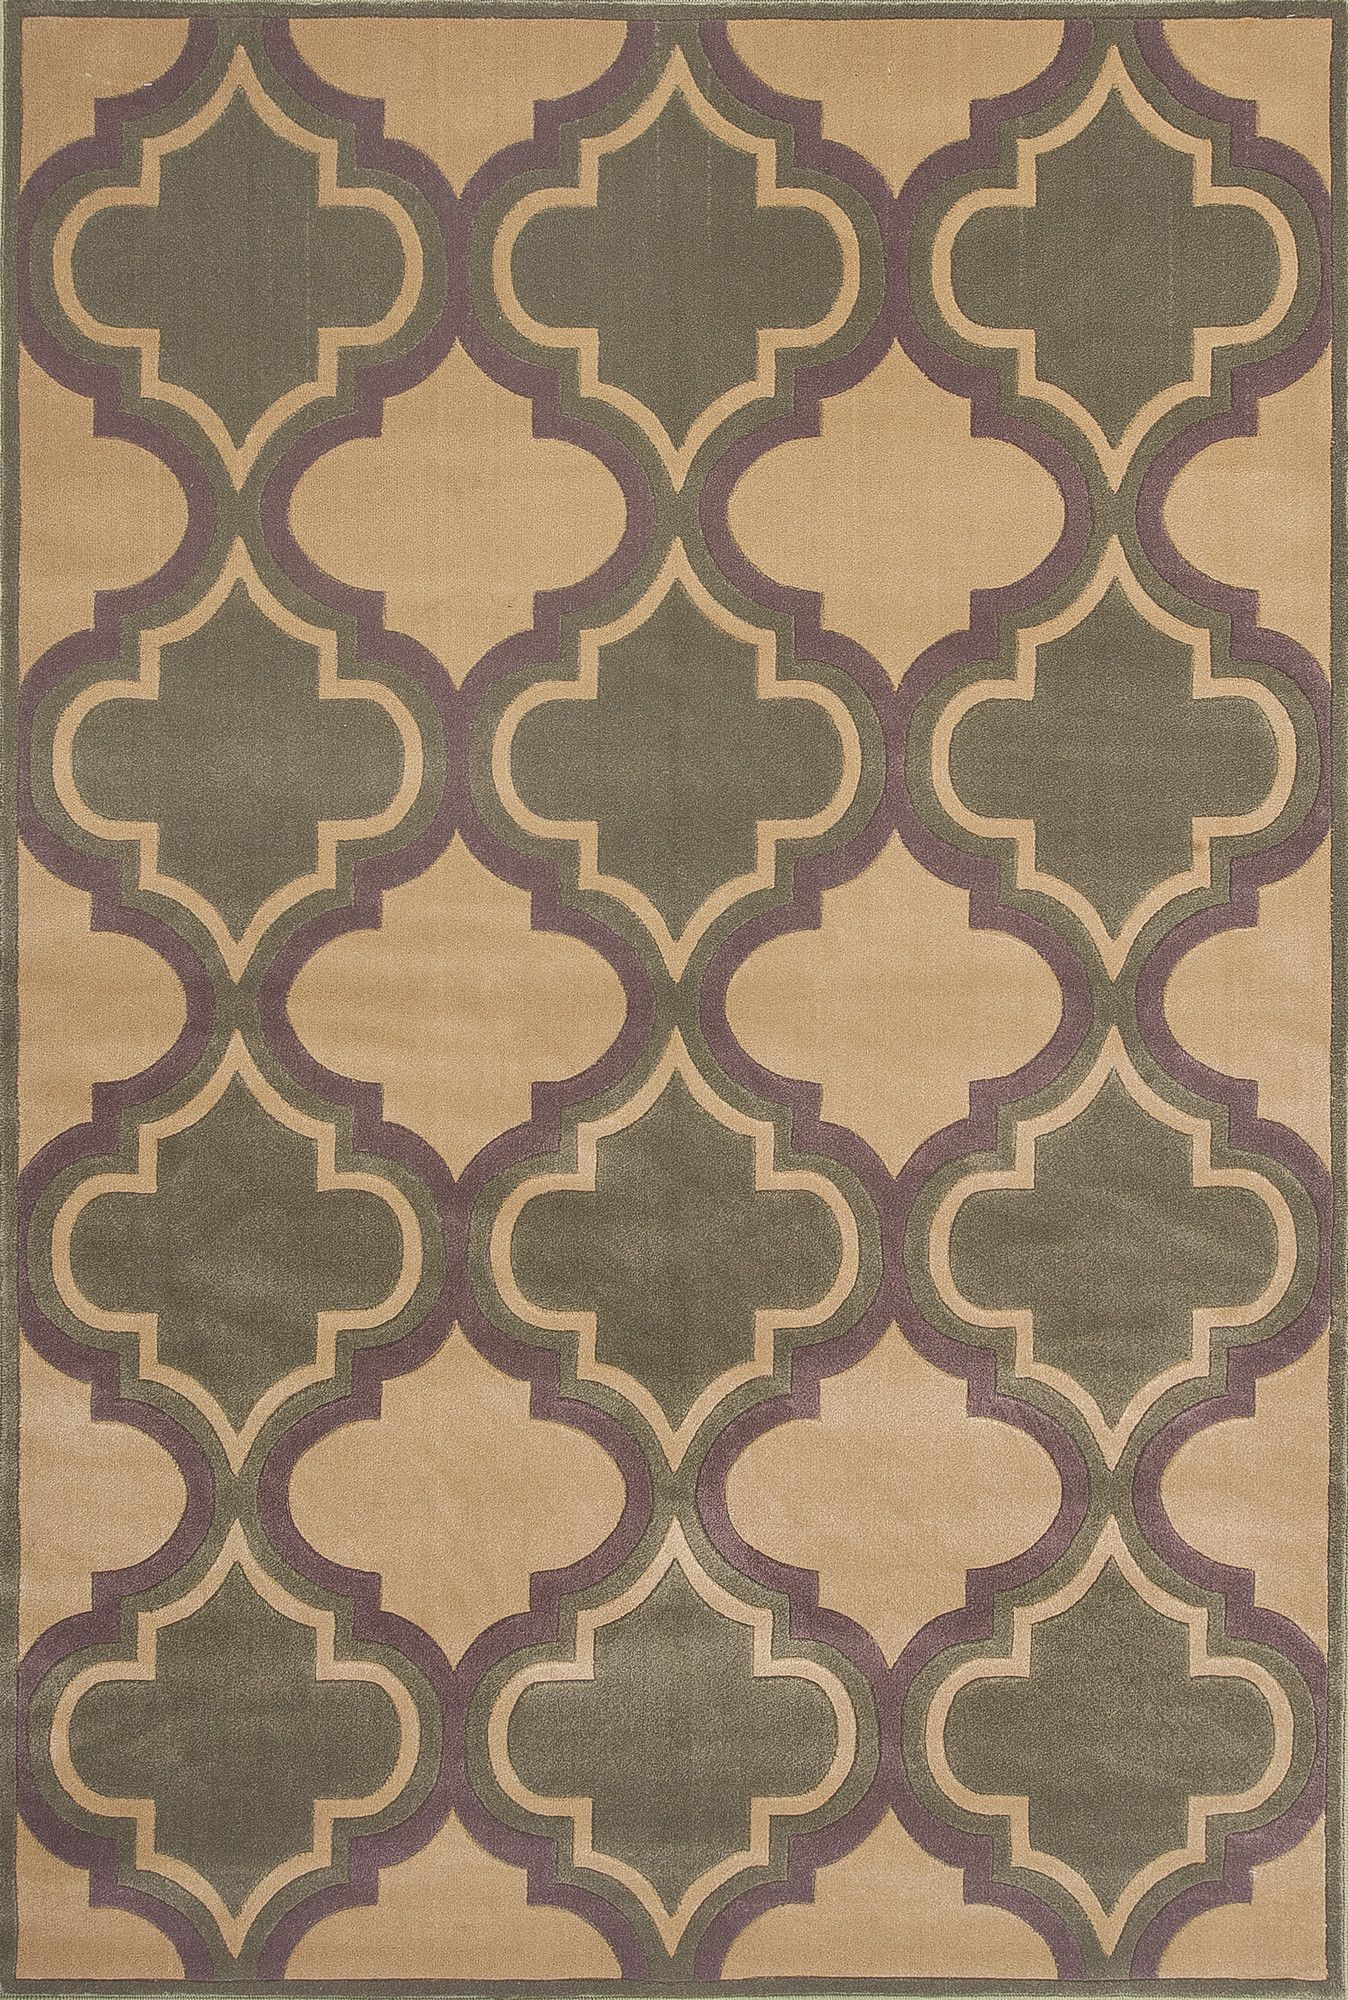 Kas Rugs Corinthian Beige Sage Quatrefoil Area Rug Reviews Wayfair